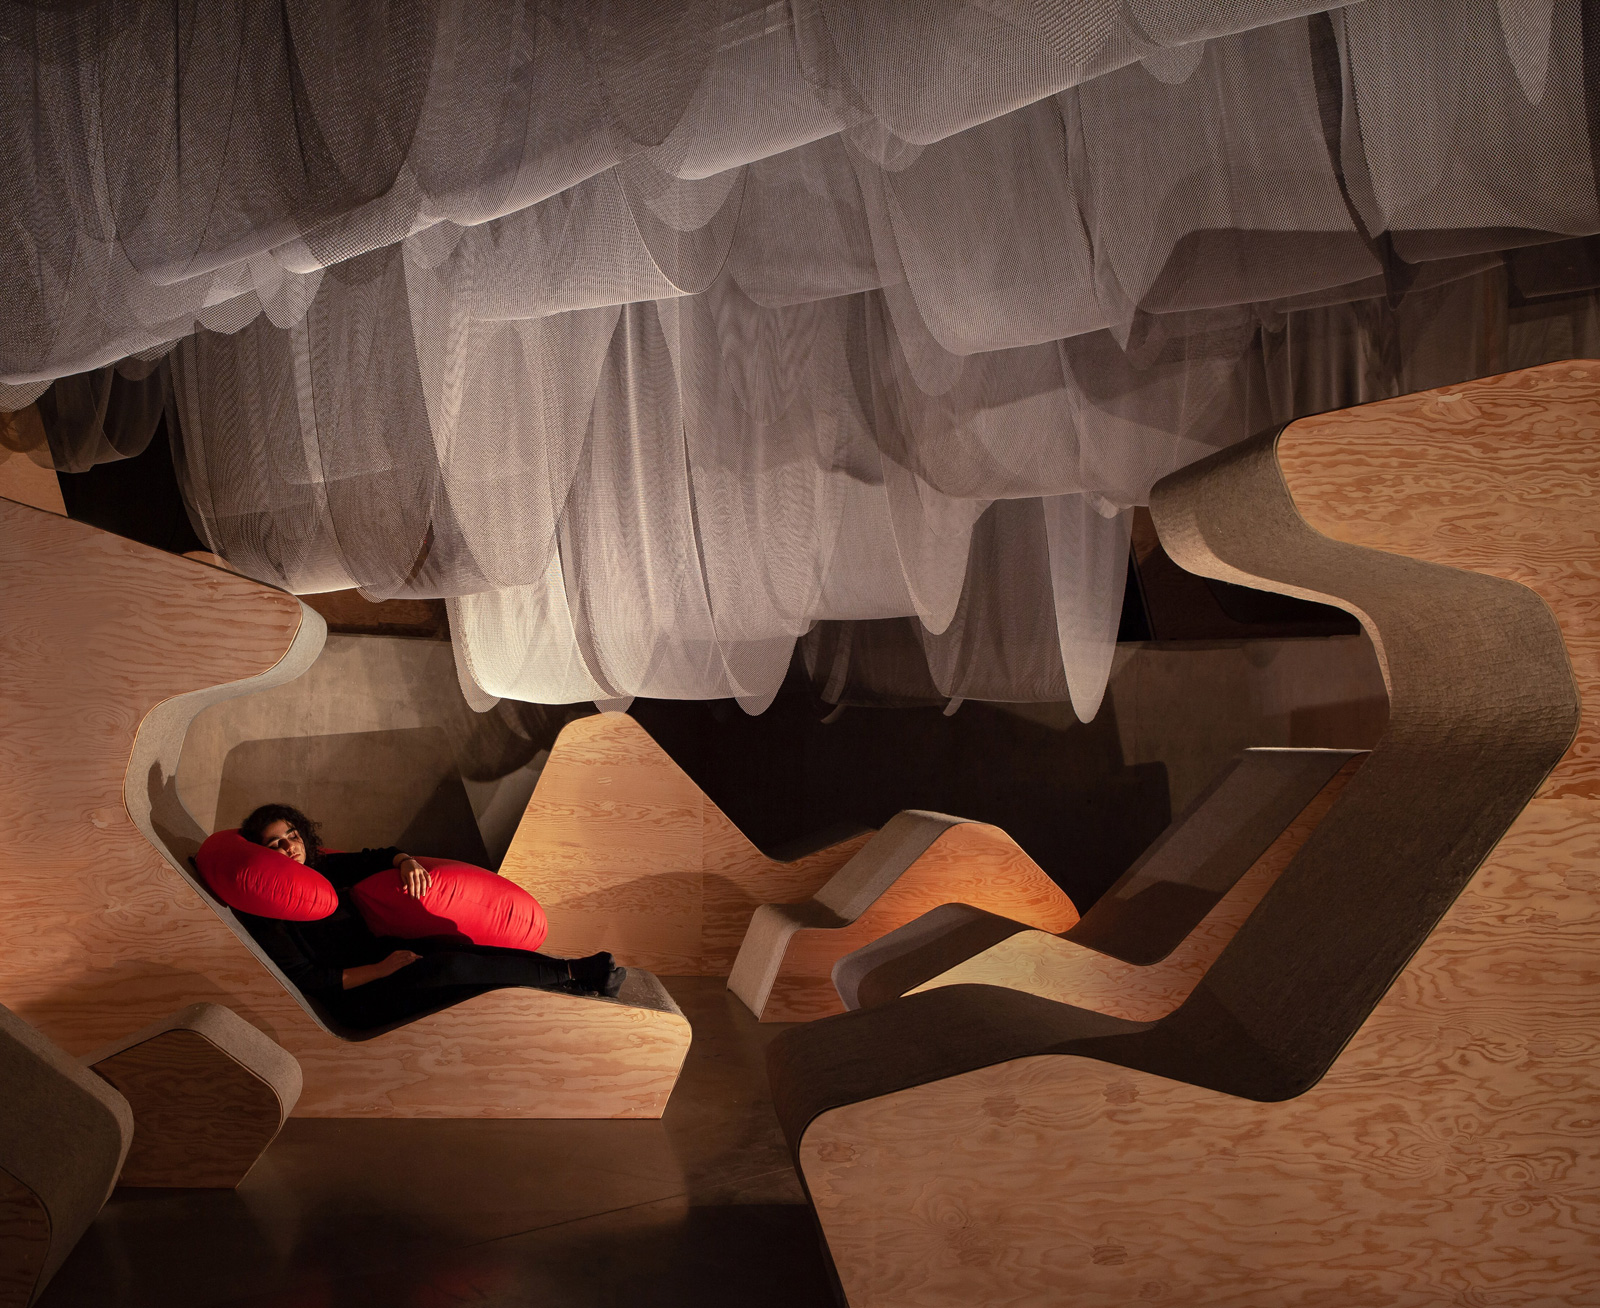 New Circadia (adventures in mental spelunking) is the inaugural installation at the new Architecture and Design Gallery – Daniels Faculty of Architecture, Design and Landscaping